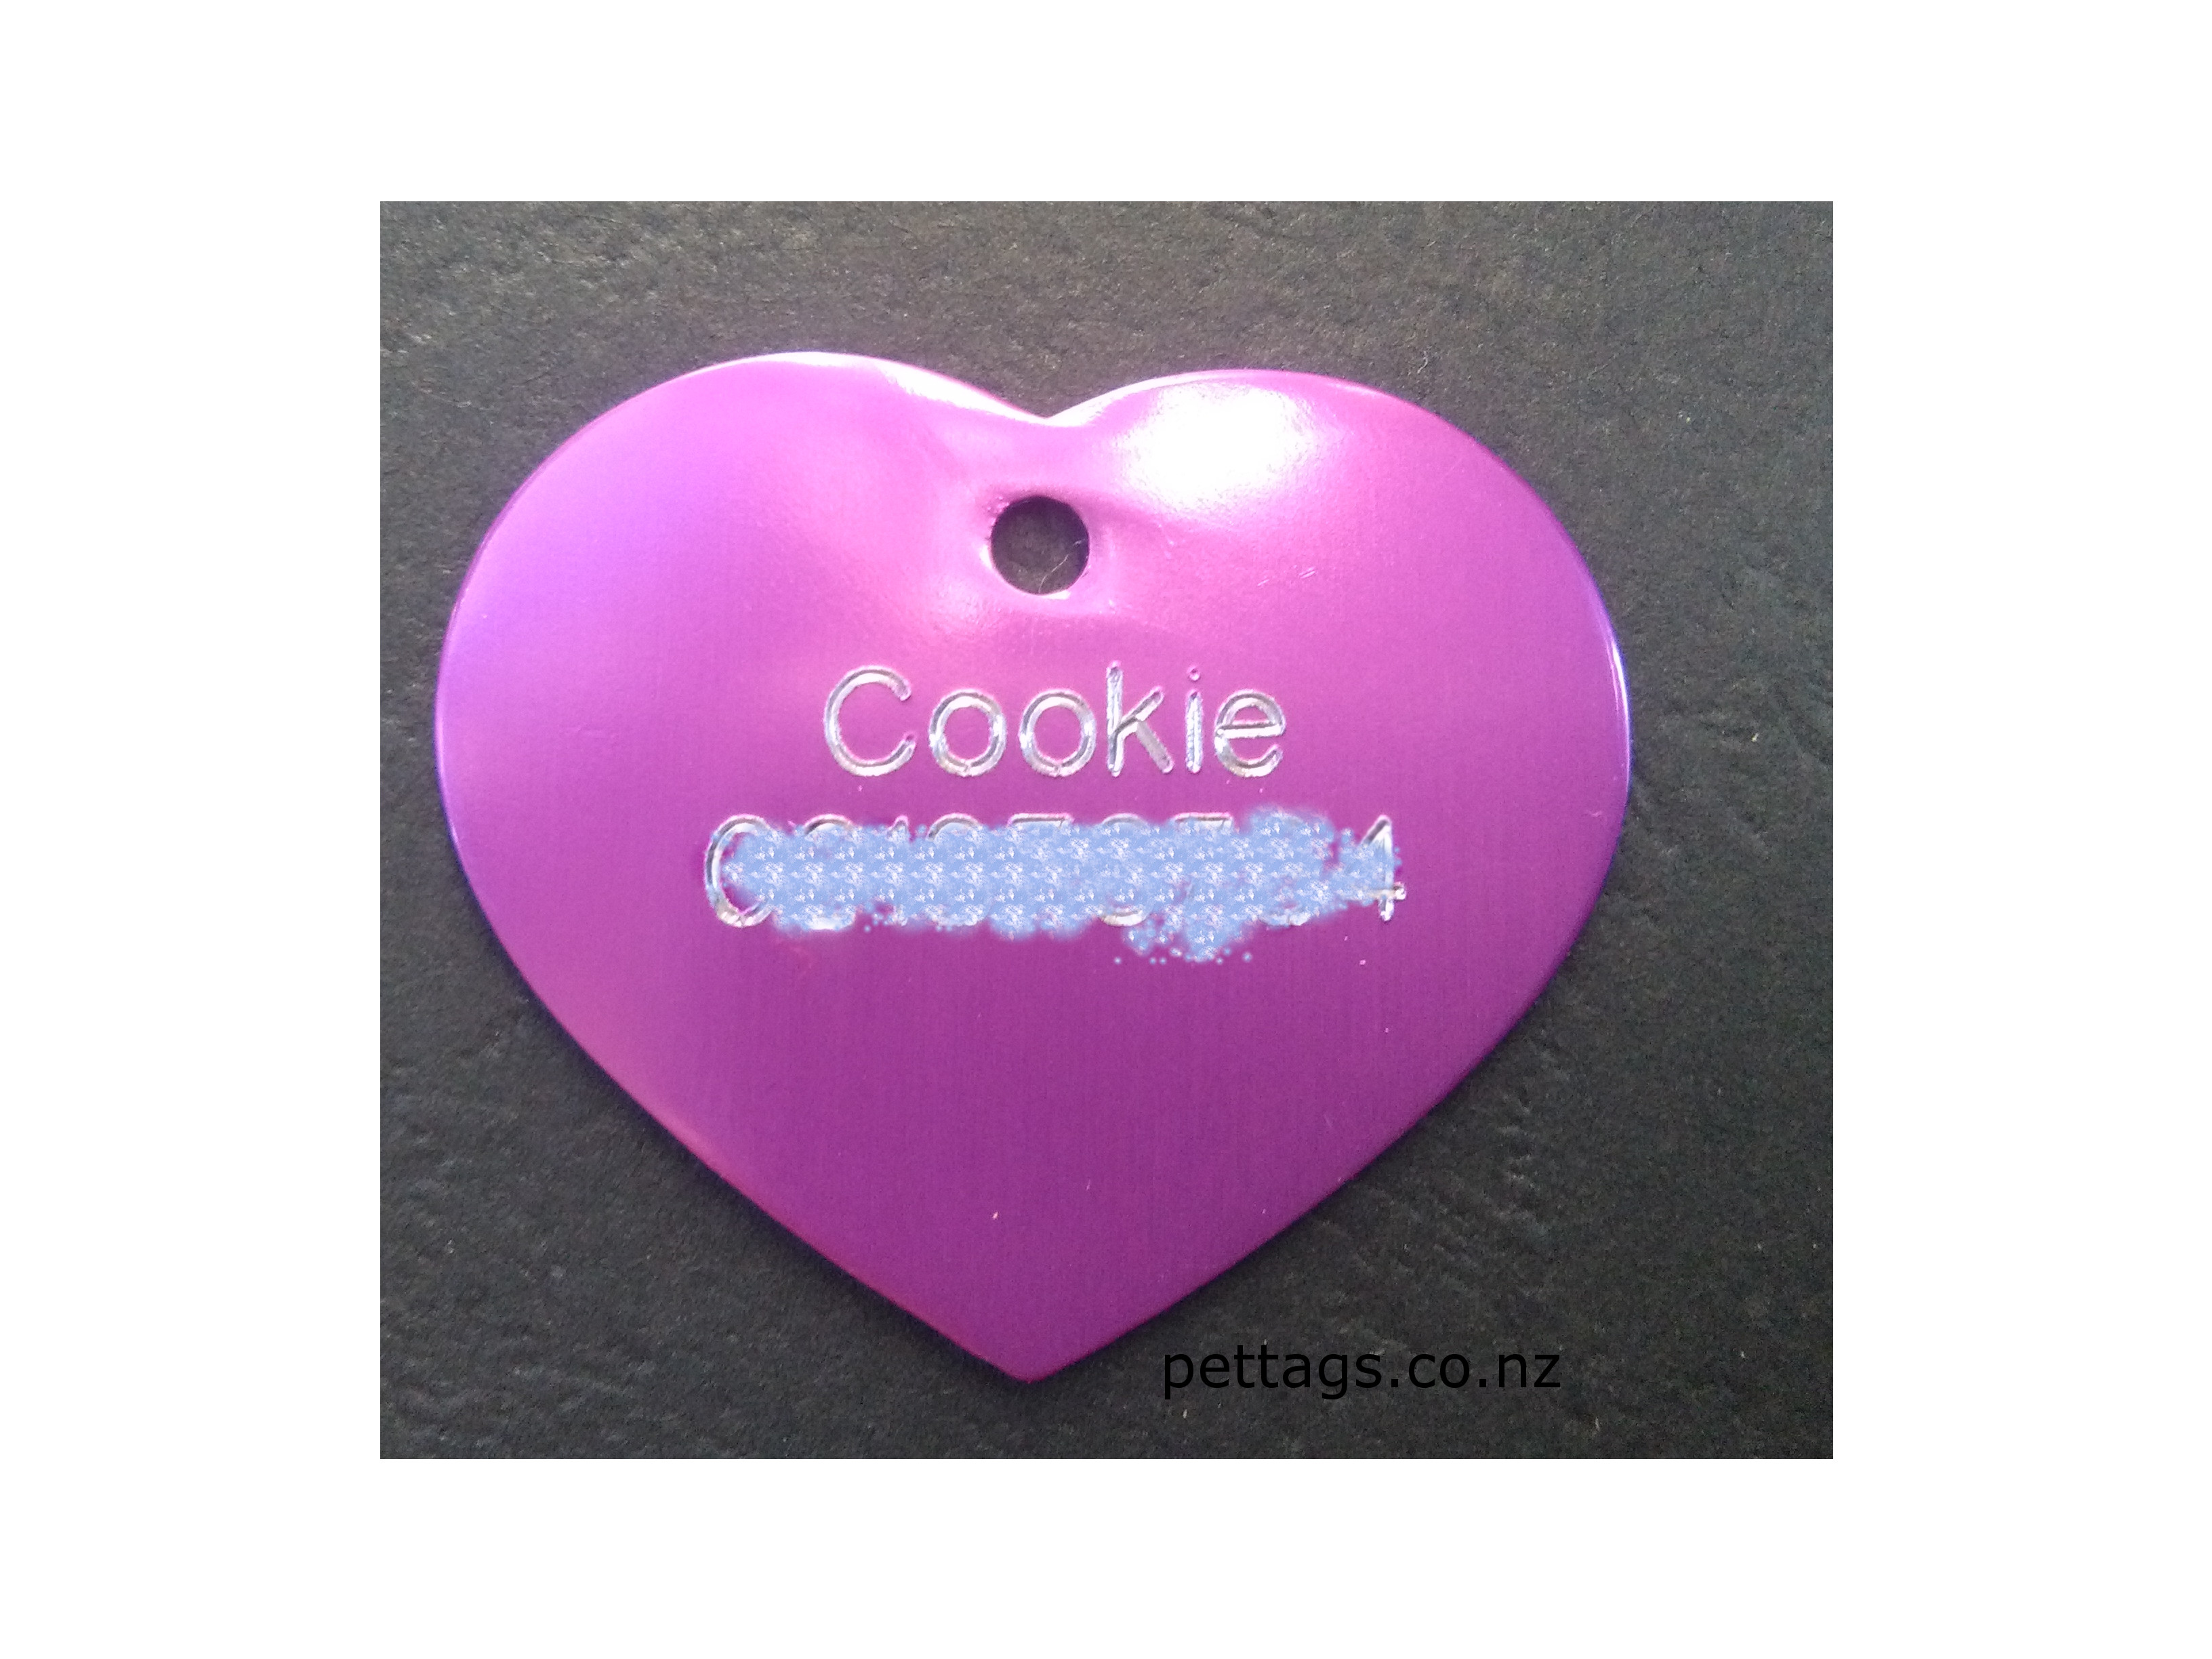 engraved pet tag in heart shape